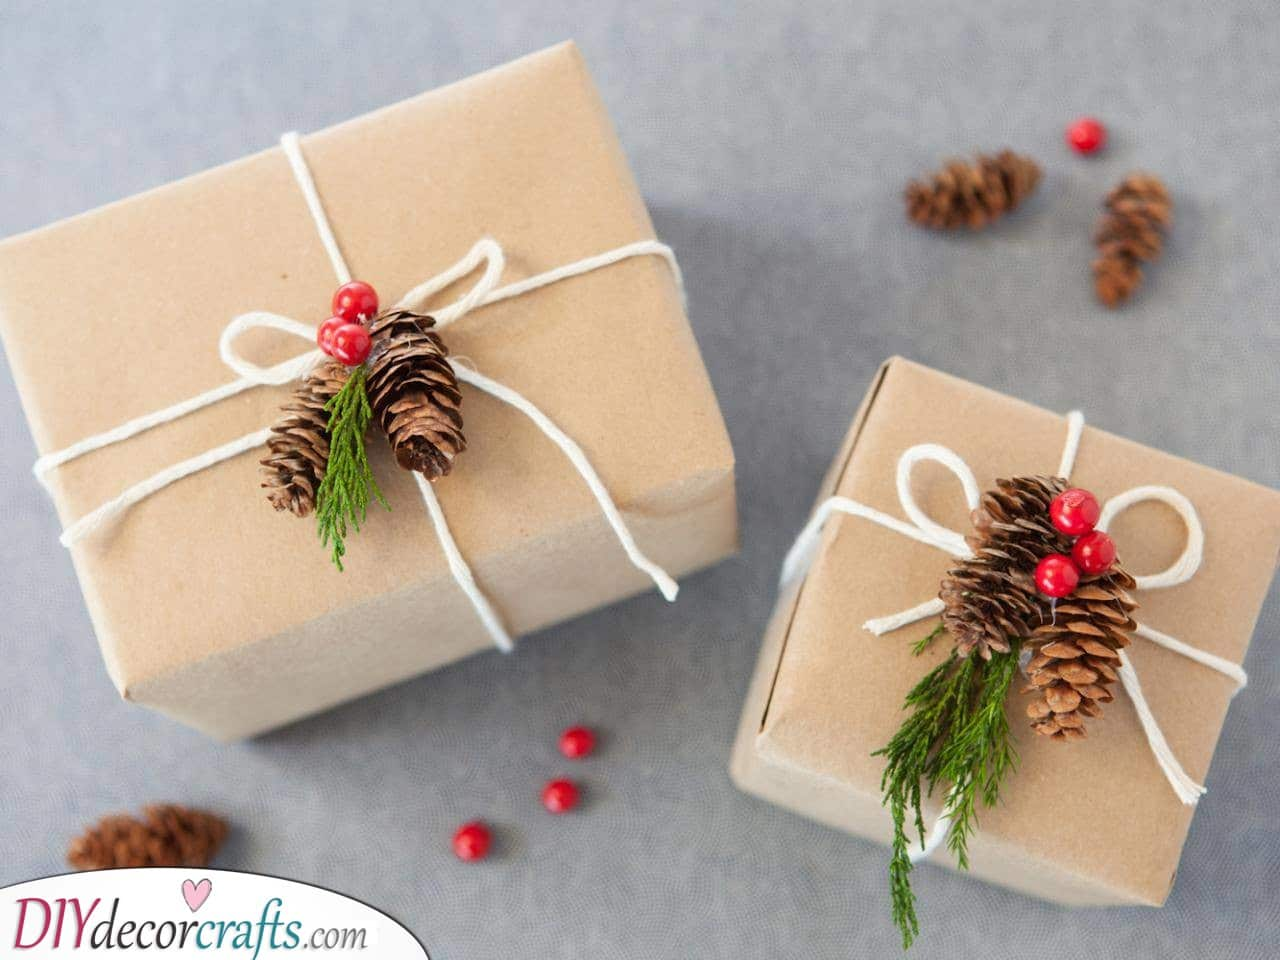 Pinecones and Mistletoe - Natural Christmas Gift Wrap Ideas